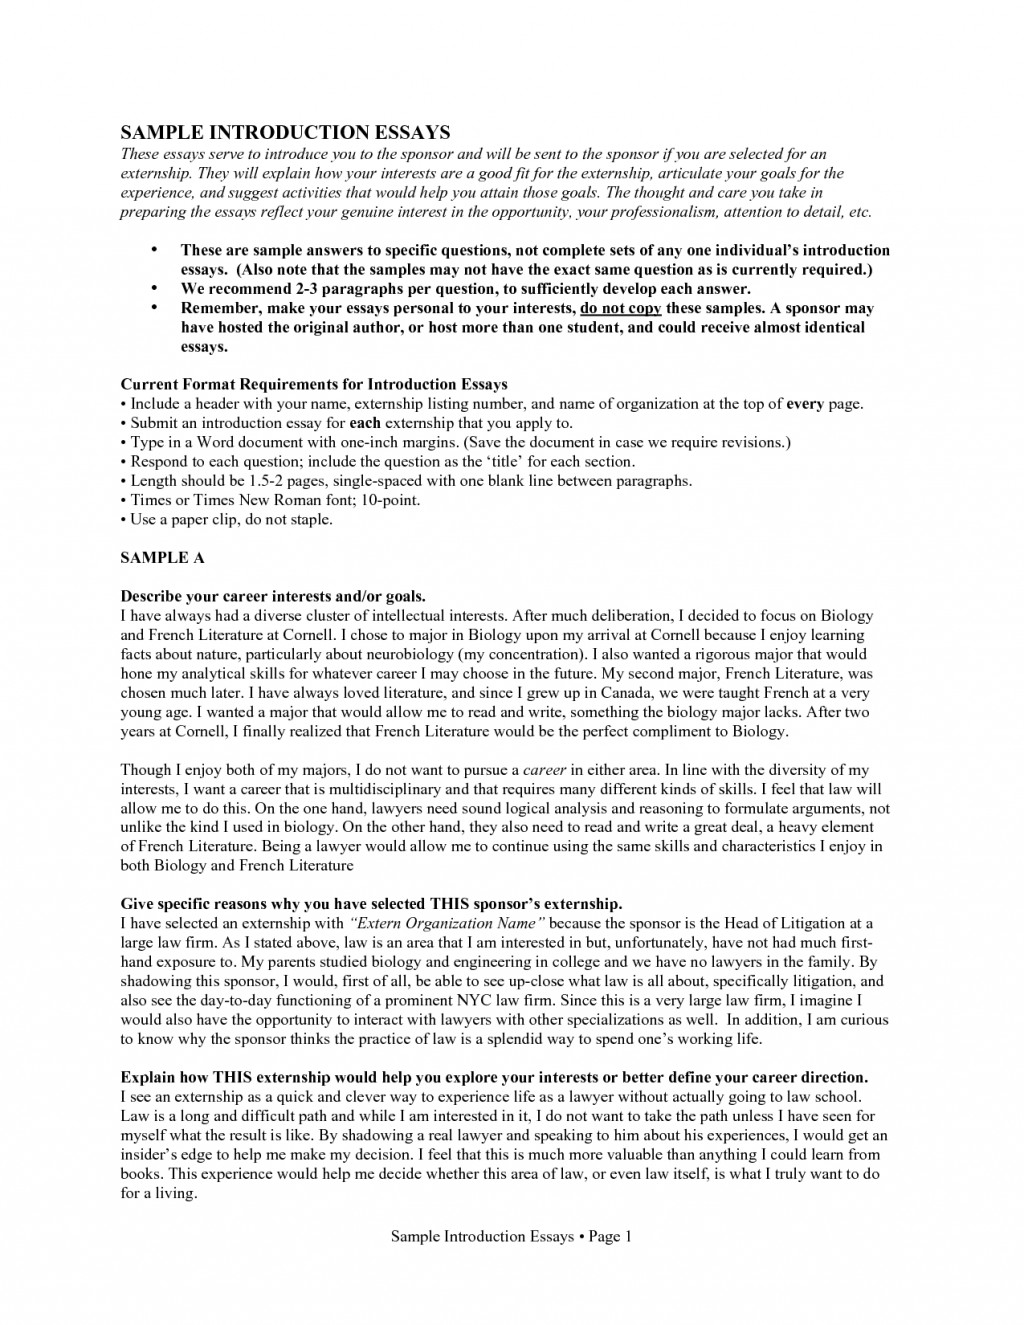 012 Essay About Your Self Discipline X Jpg How To Write An 8vvv9 Introduce Myself Writing Example Singular A Yourself Narrative Short Paper Without Using I Large